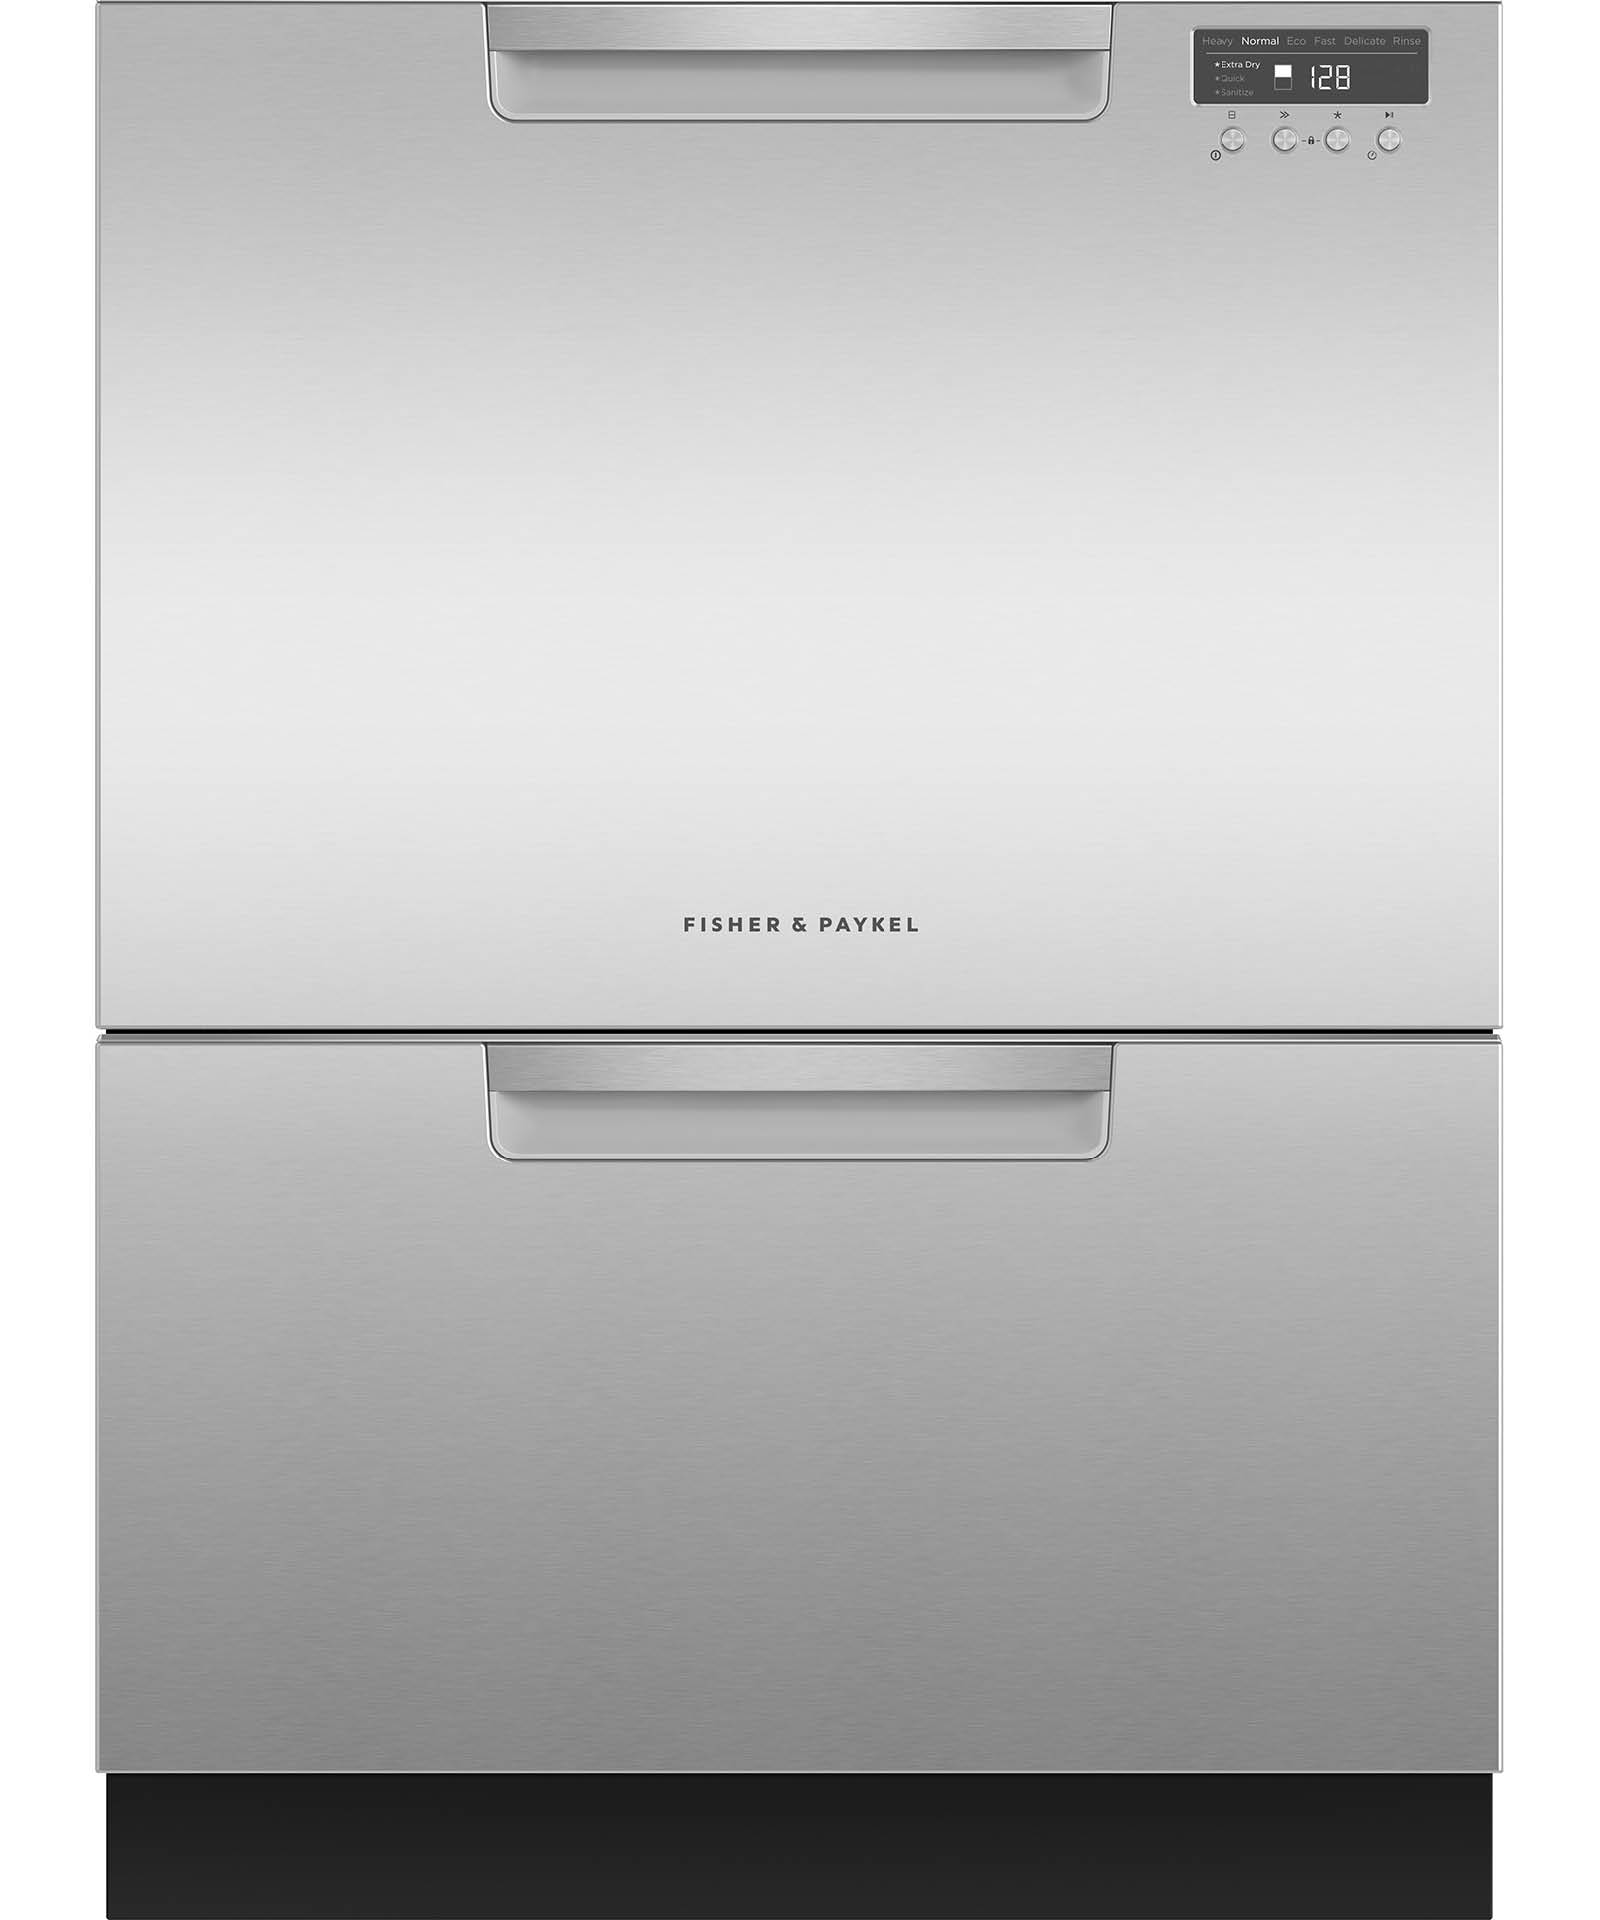 Dd24dctx9 N Dd24dct 9 Fisher Paykel Washer Wiring Diagram Tall Double Dishdrawer Dishwasher Incl Sanitize Extra Dry And Full Flex Racking